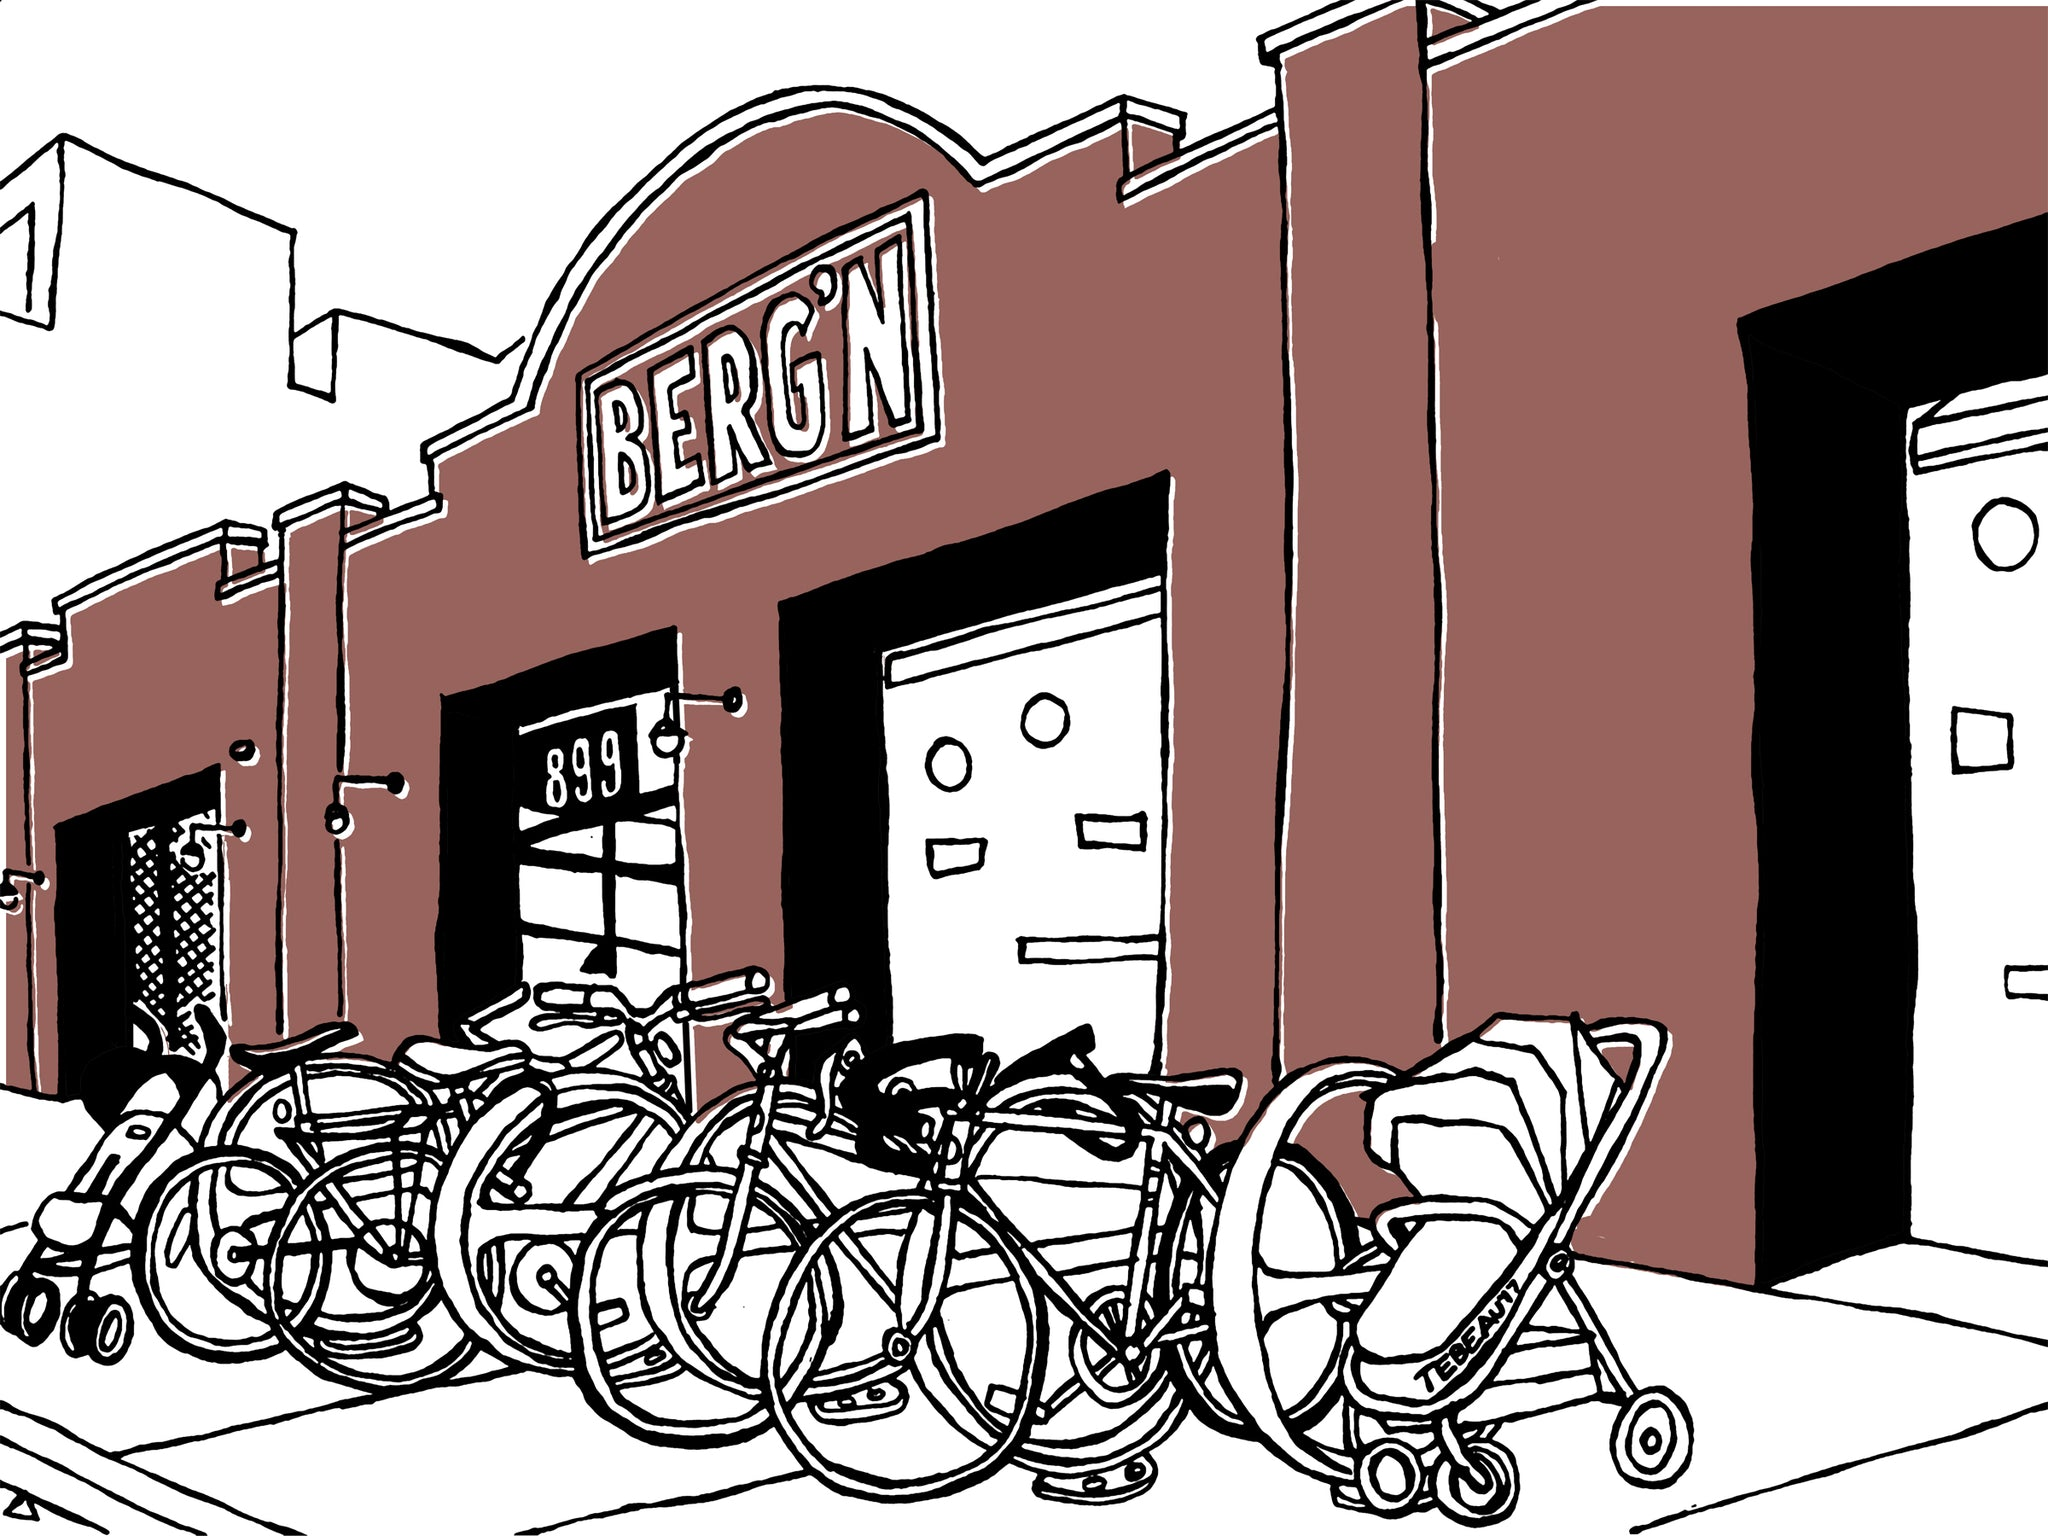 BERG'N of Crown Heights, Brooklyn: signed BERGN art prints. (ships free in the US)